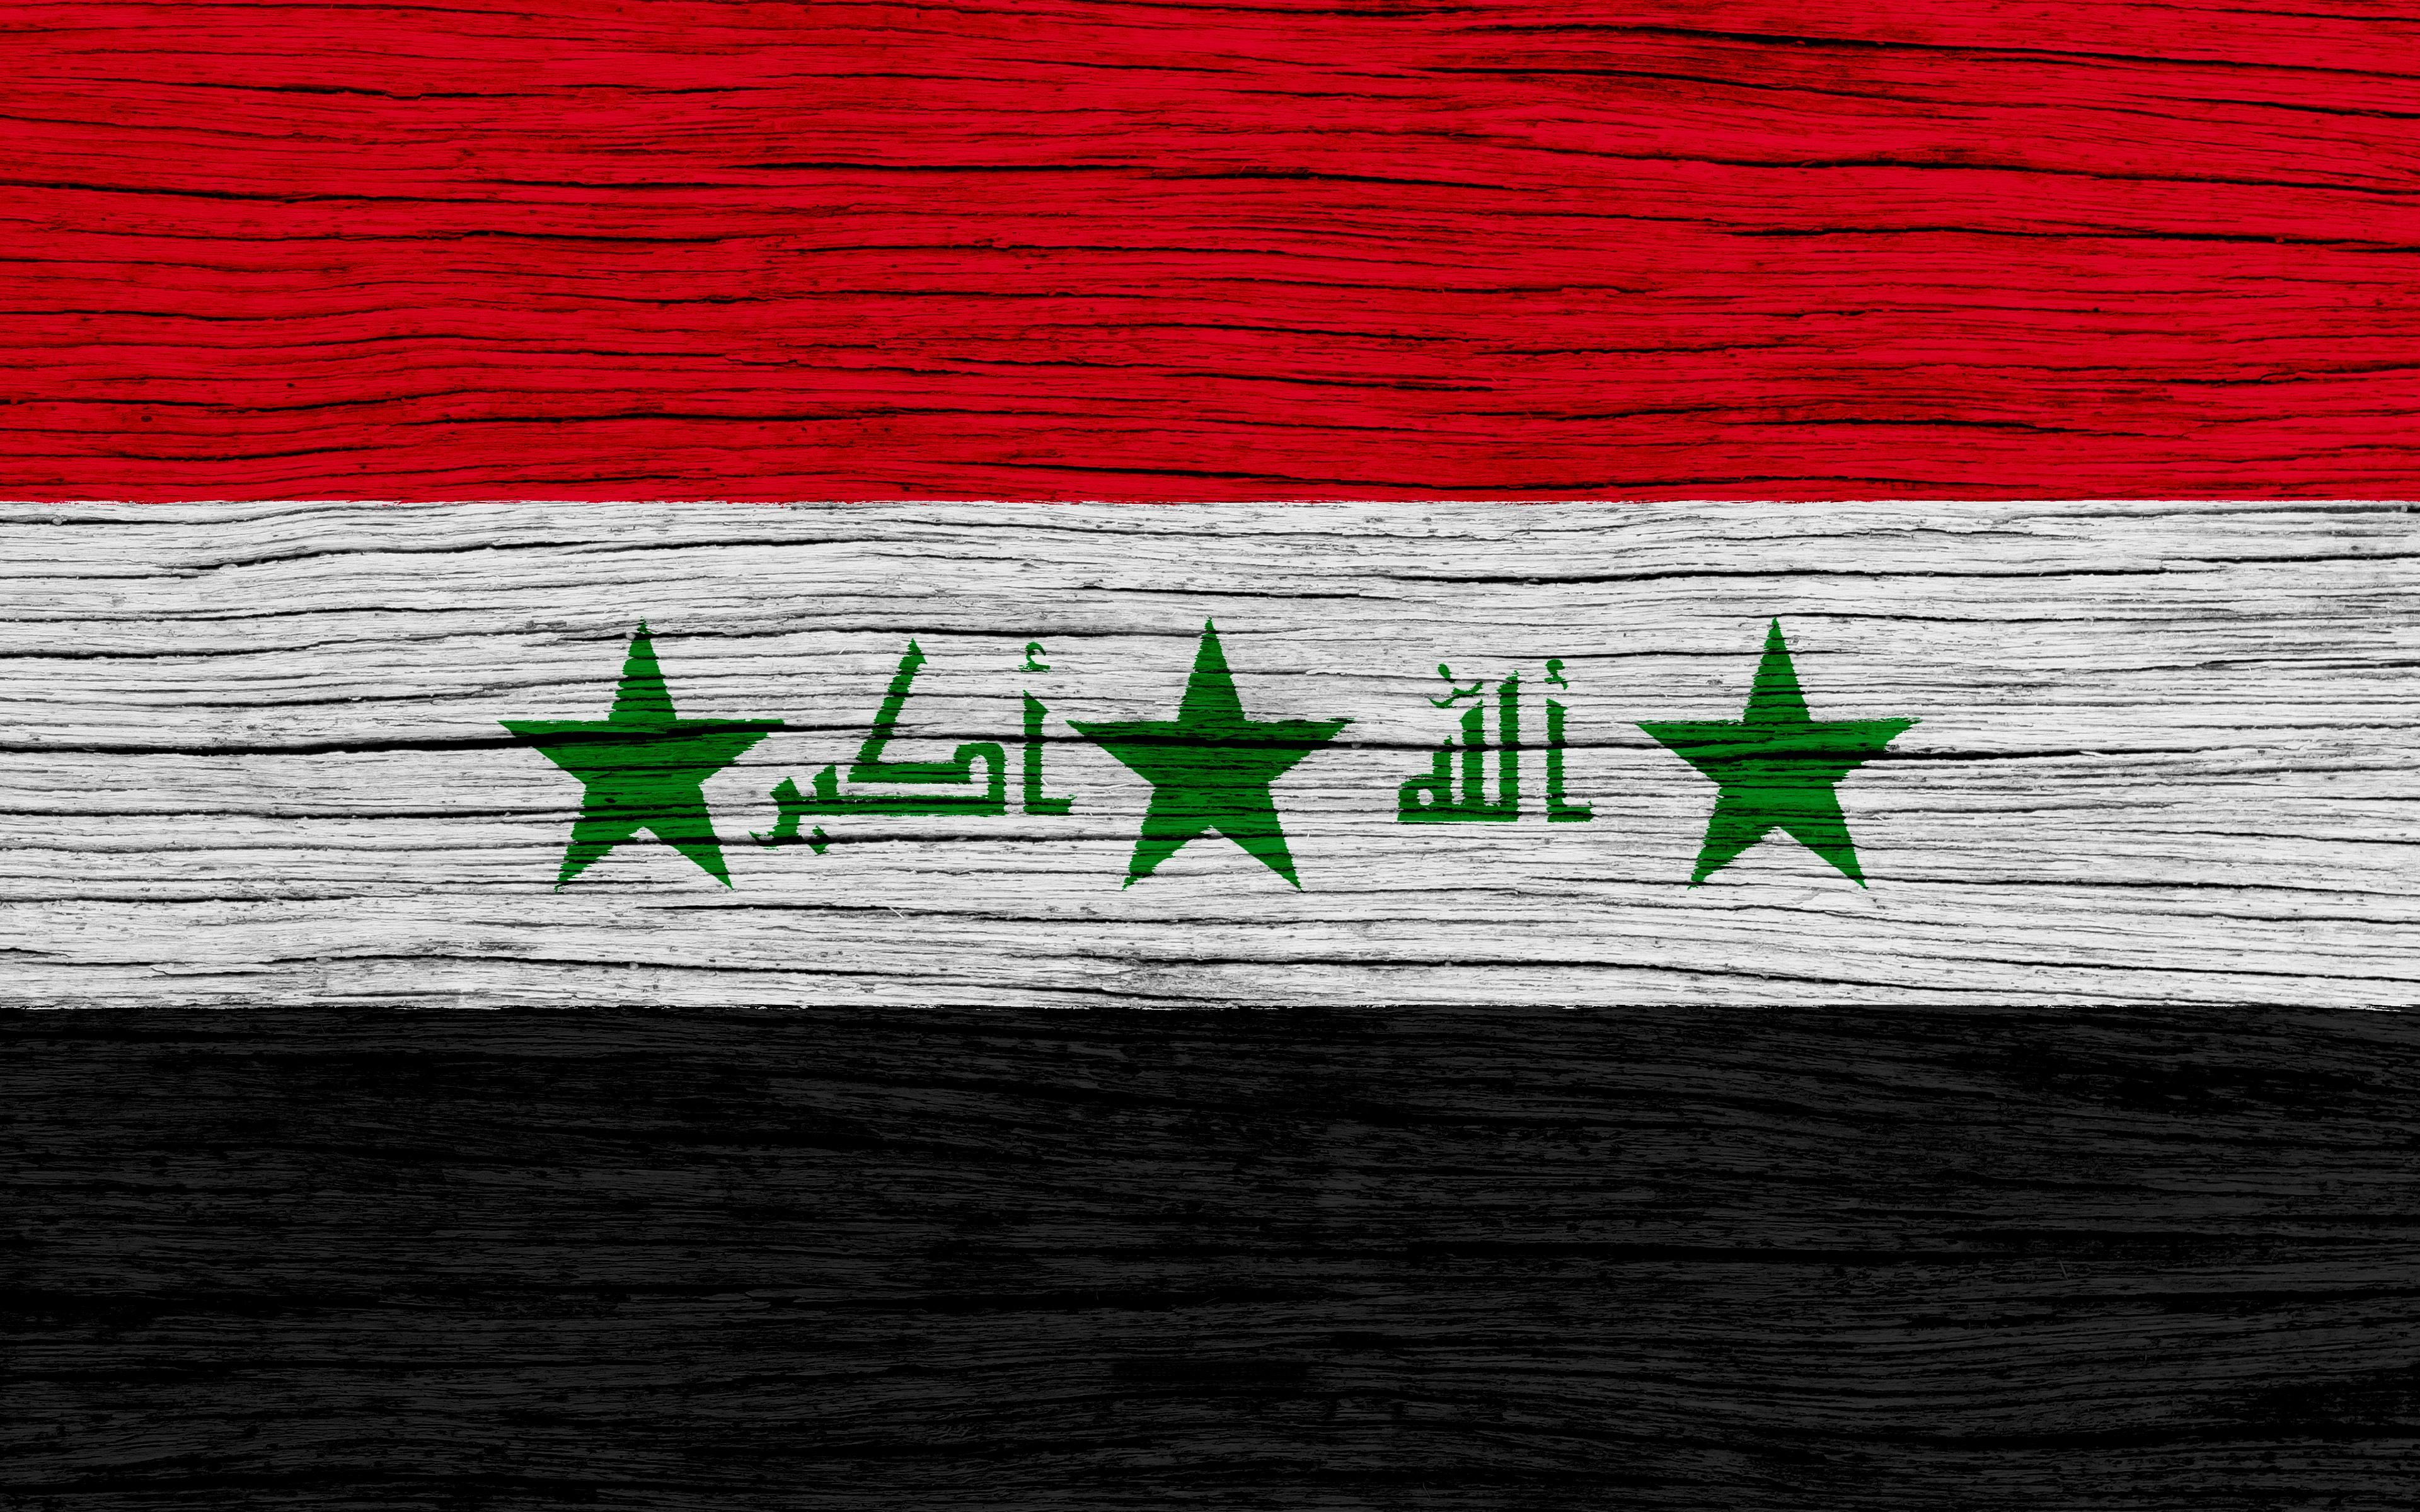 Download wallpapers Flag of Iraq, 4k, Asia, wooden texture, Iraqi